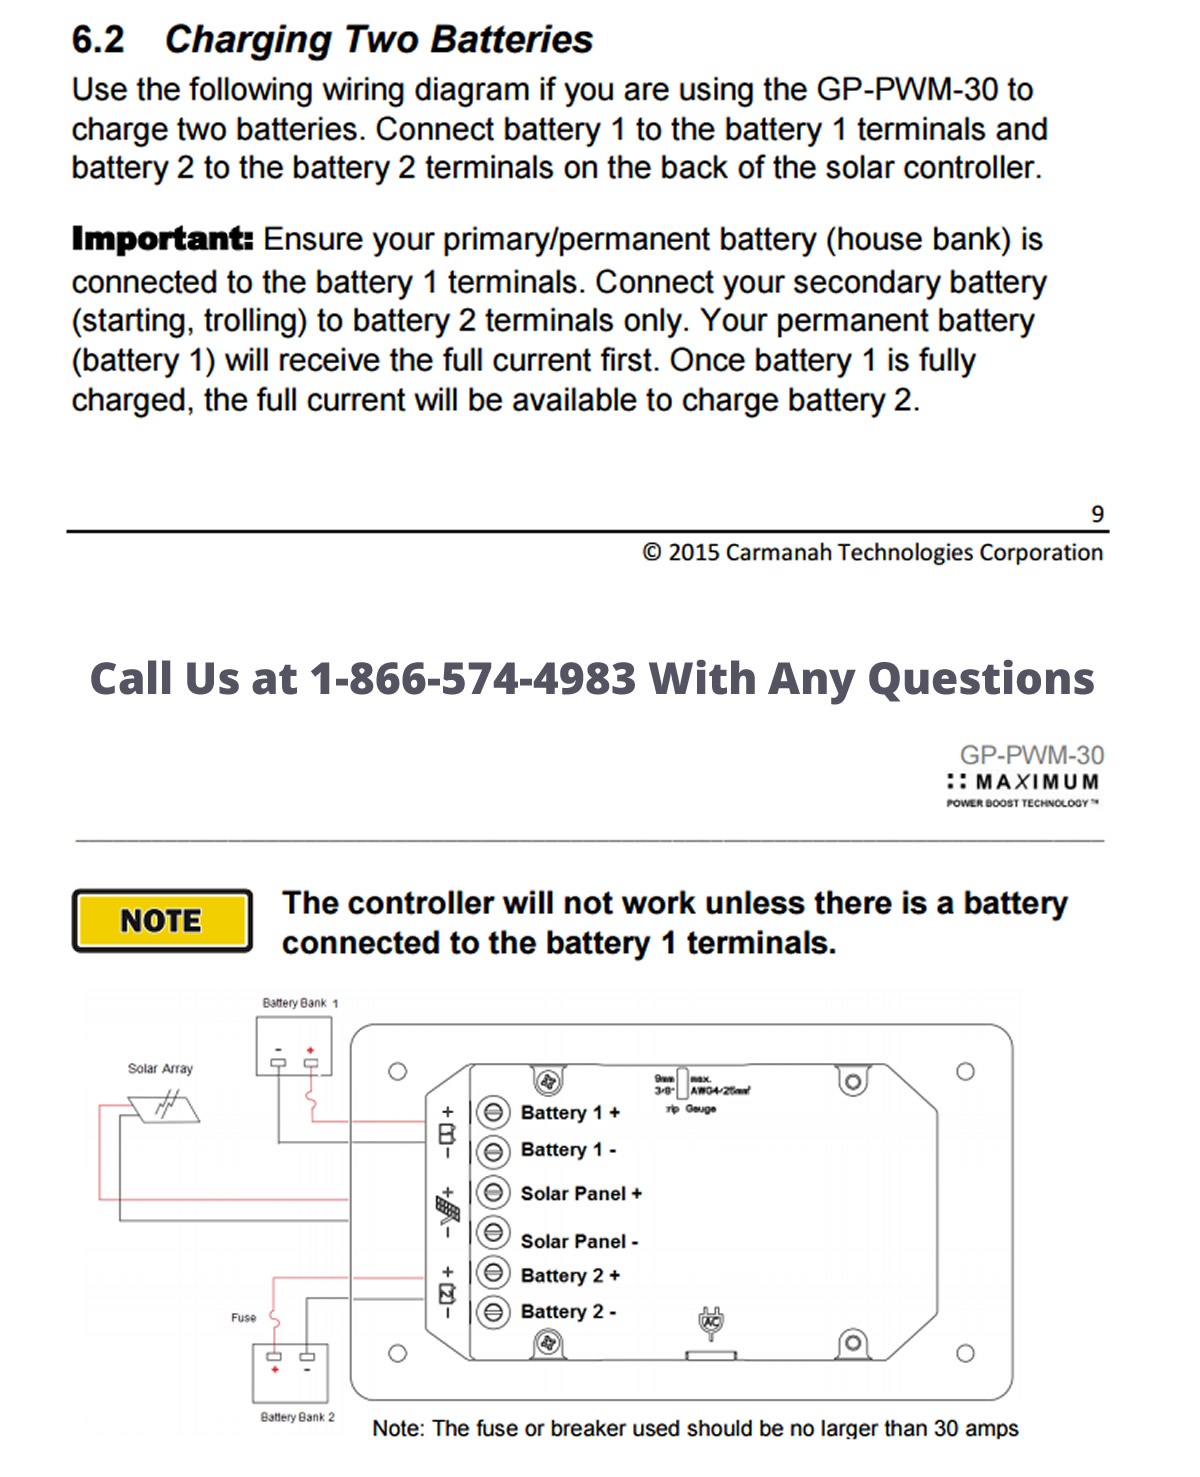 How To Charge Two Batteries In Your Rv With One Solar Panel Diagram As Well Panels Work On Light Socket Wiring Instructions For Controller From Go Power Dual Battery Bank Operation